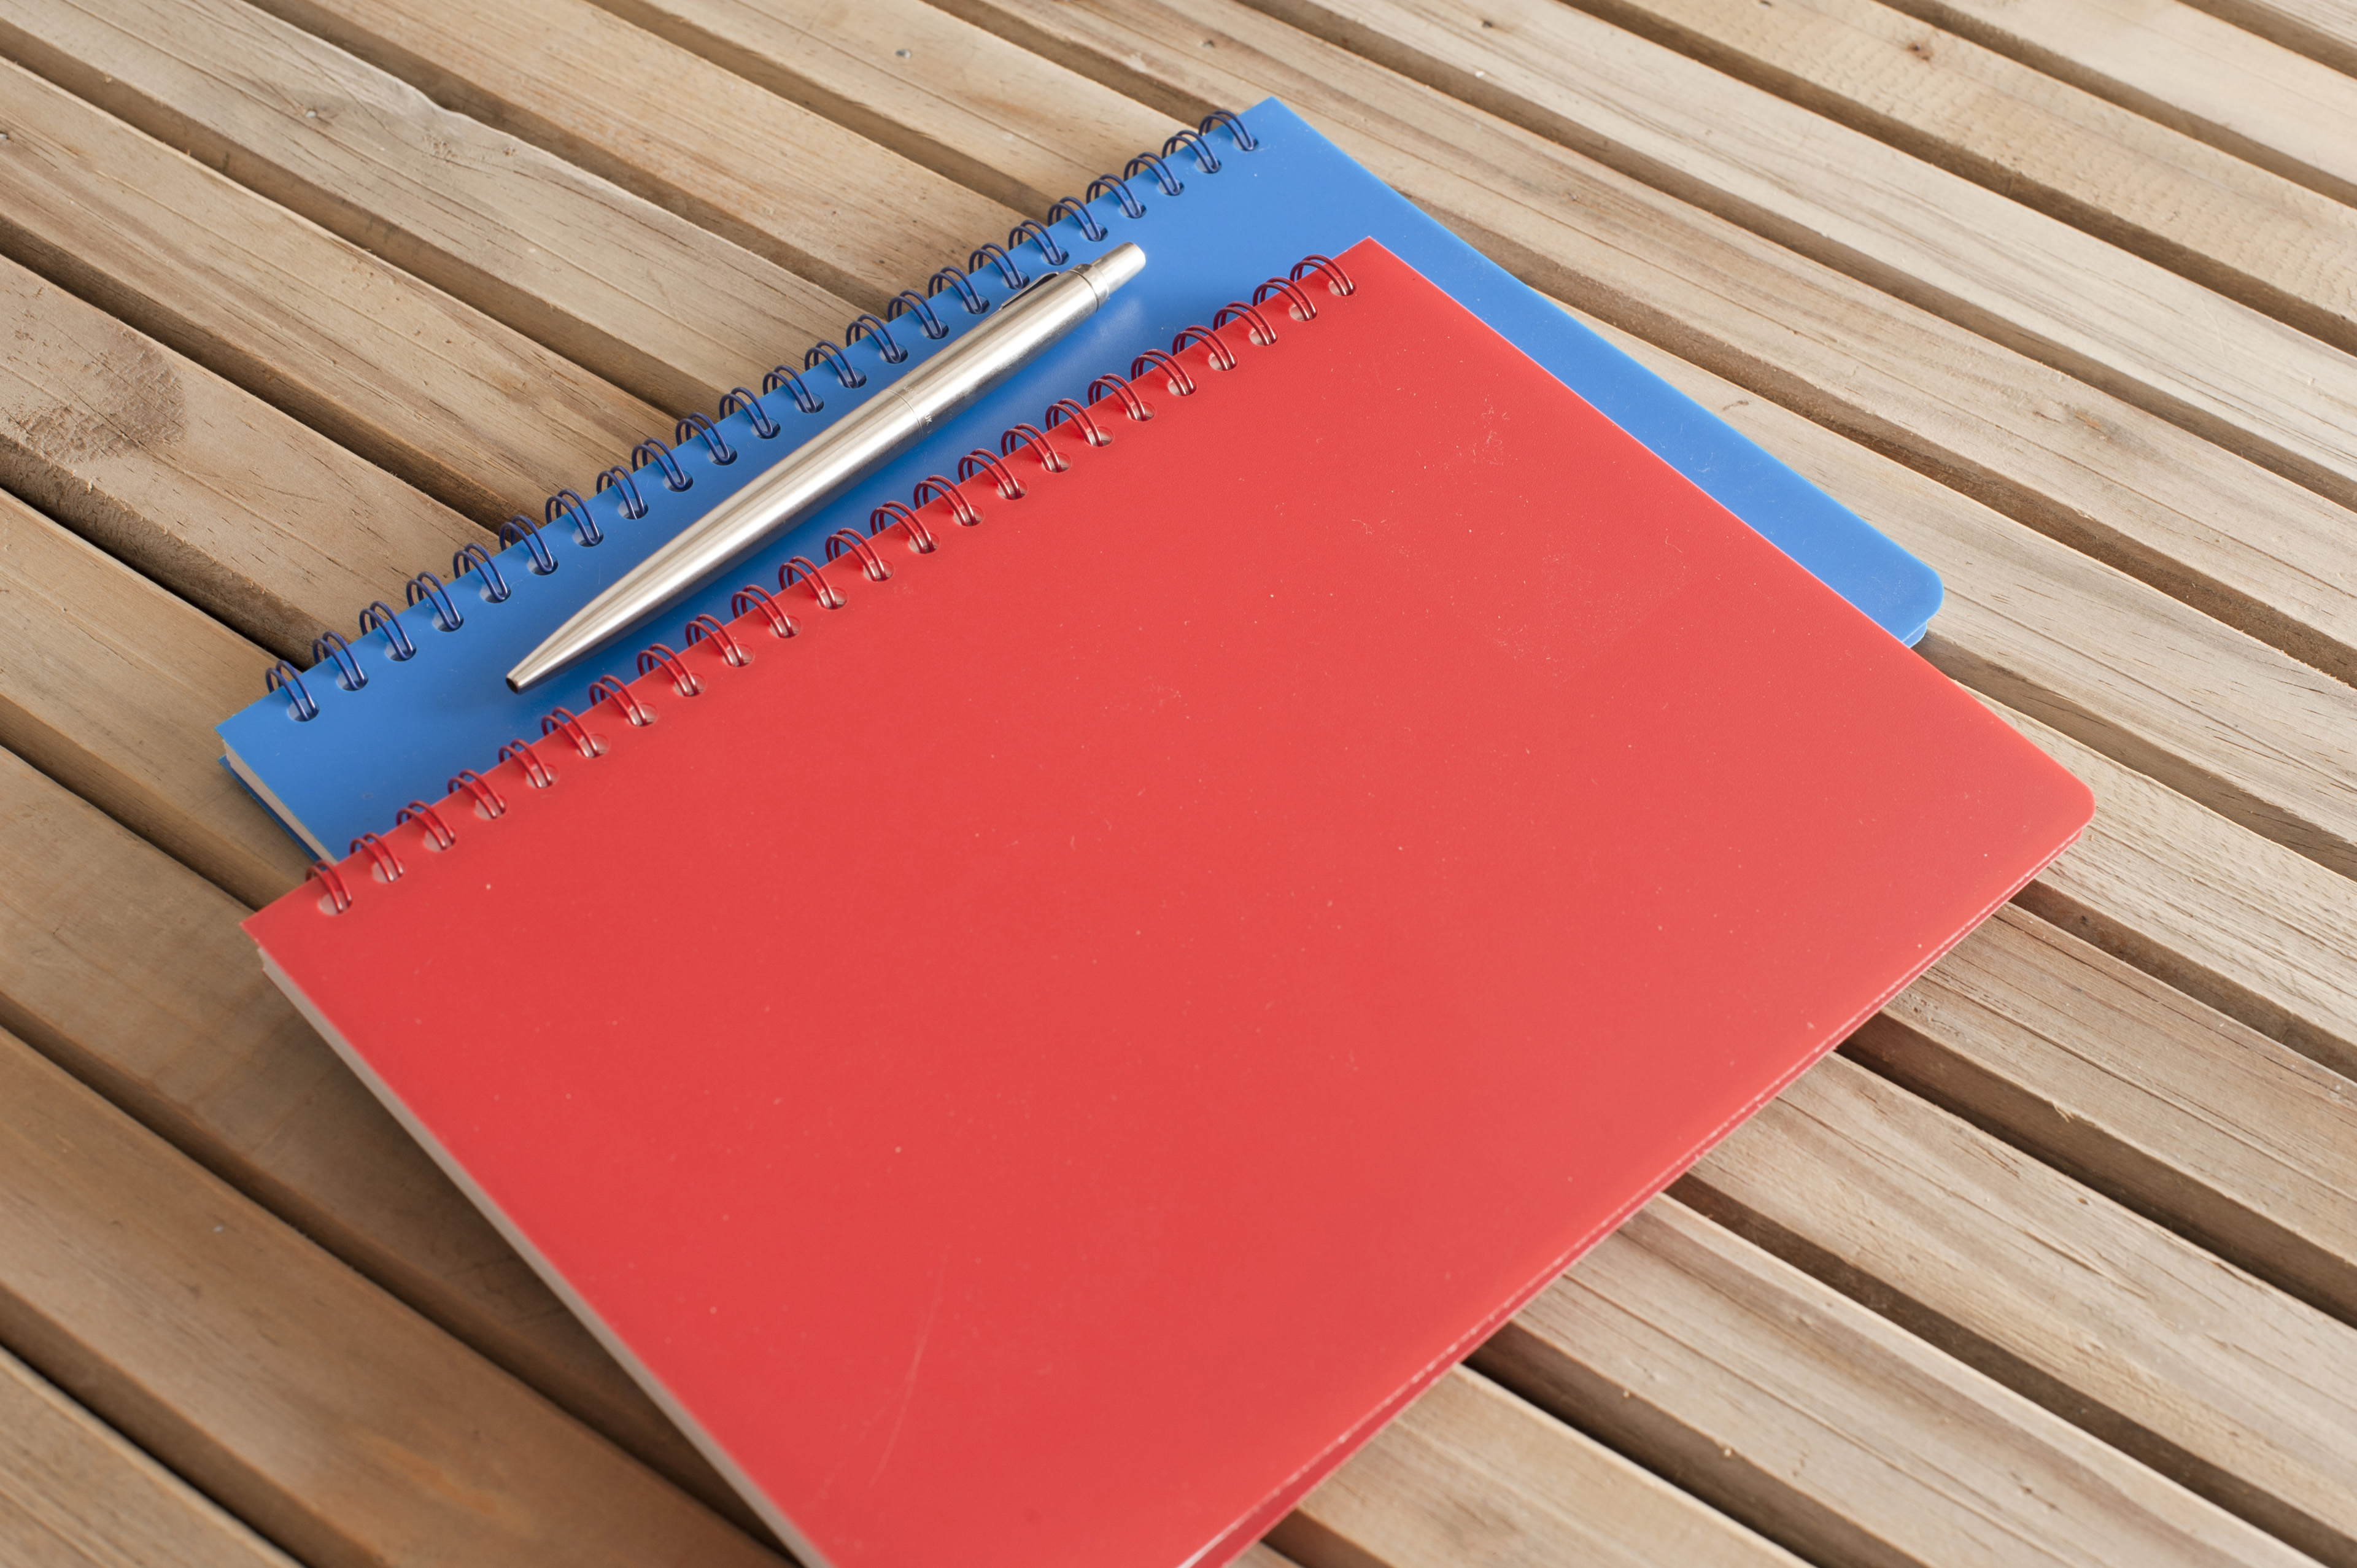 Close up Closed Blue and Red Notebooks with Ballpoint Pen on Top Placed on Wooden Table.